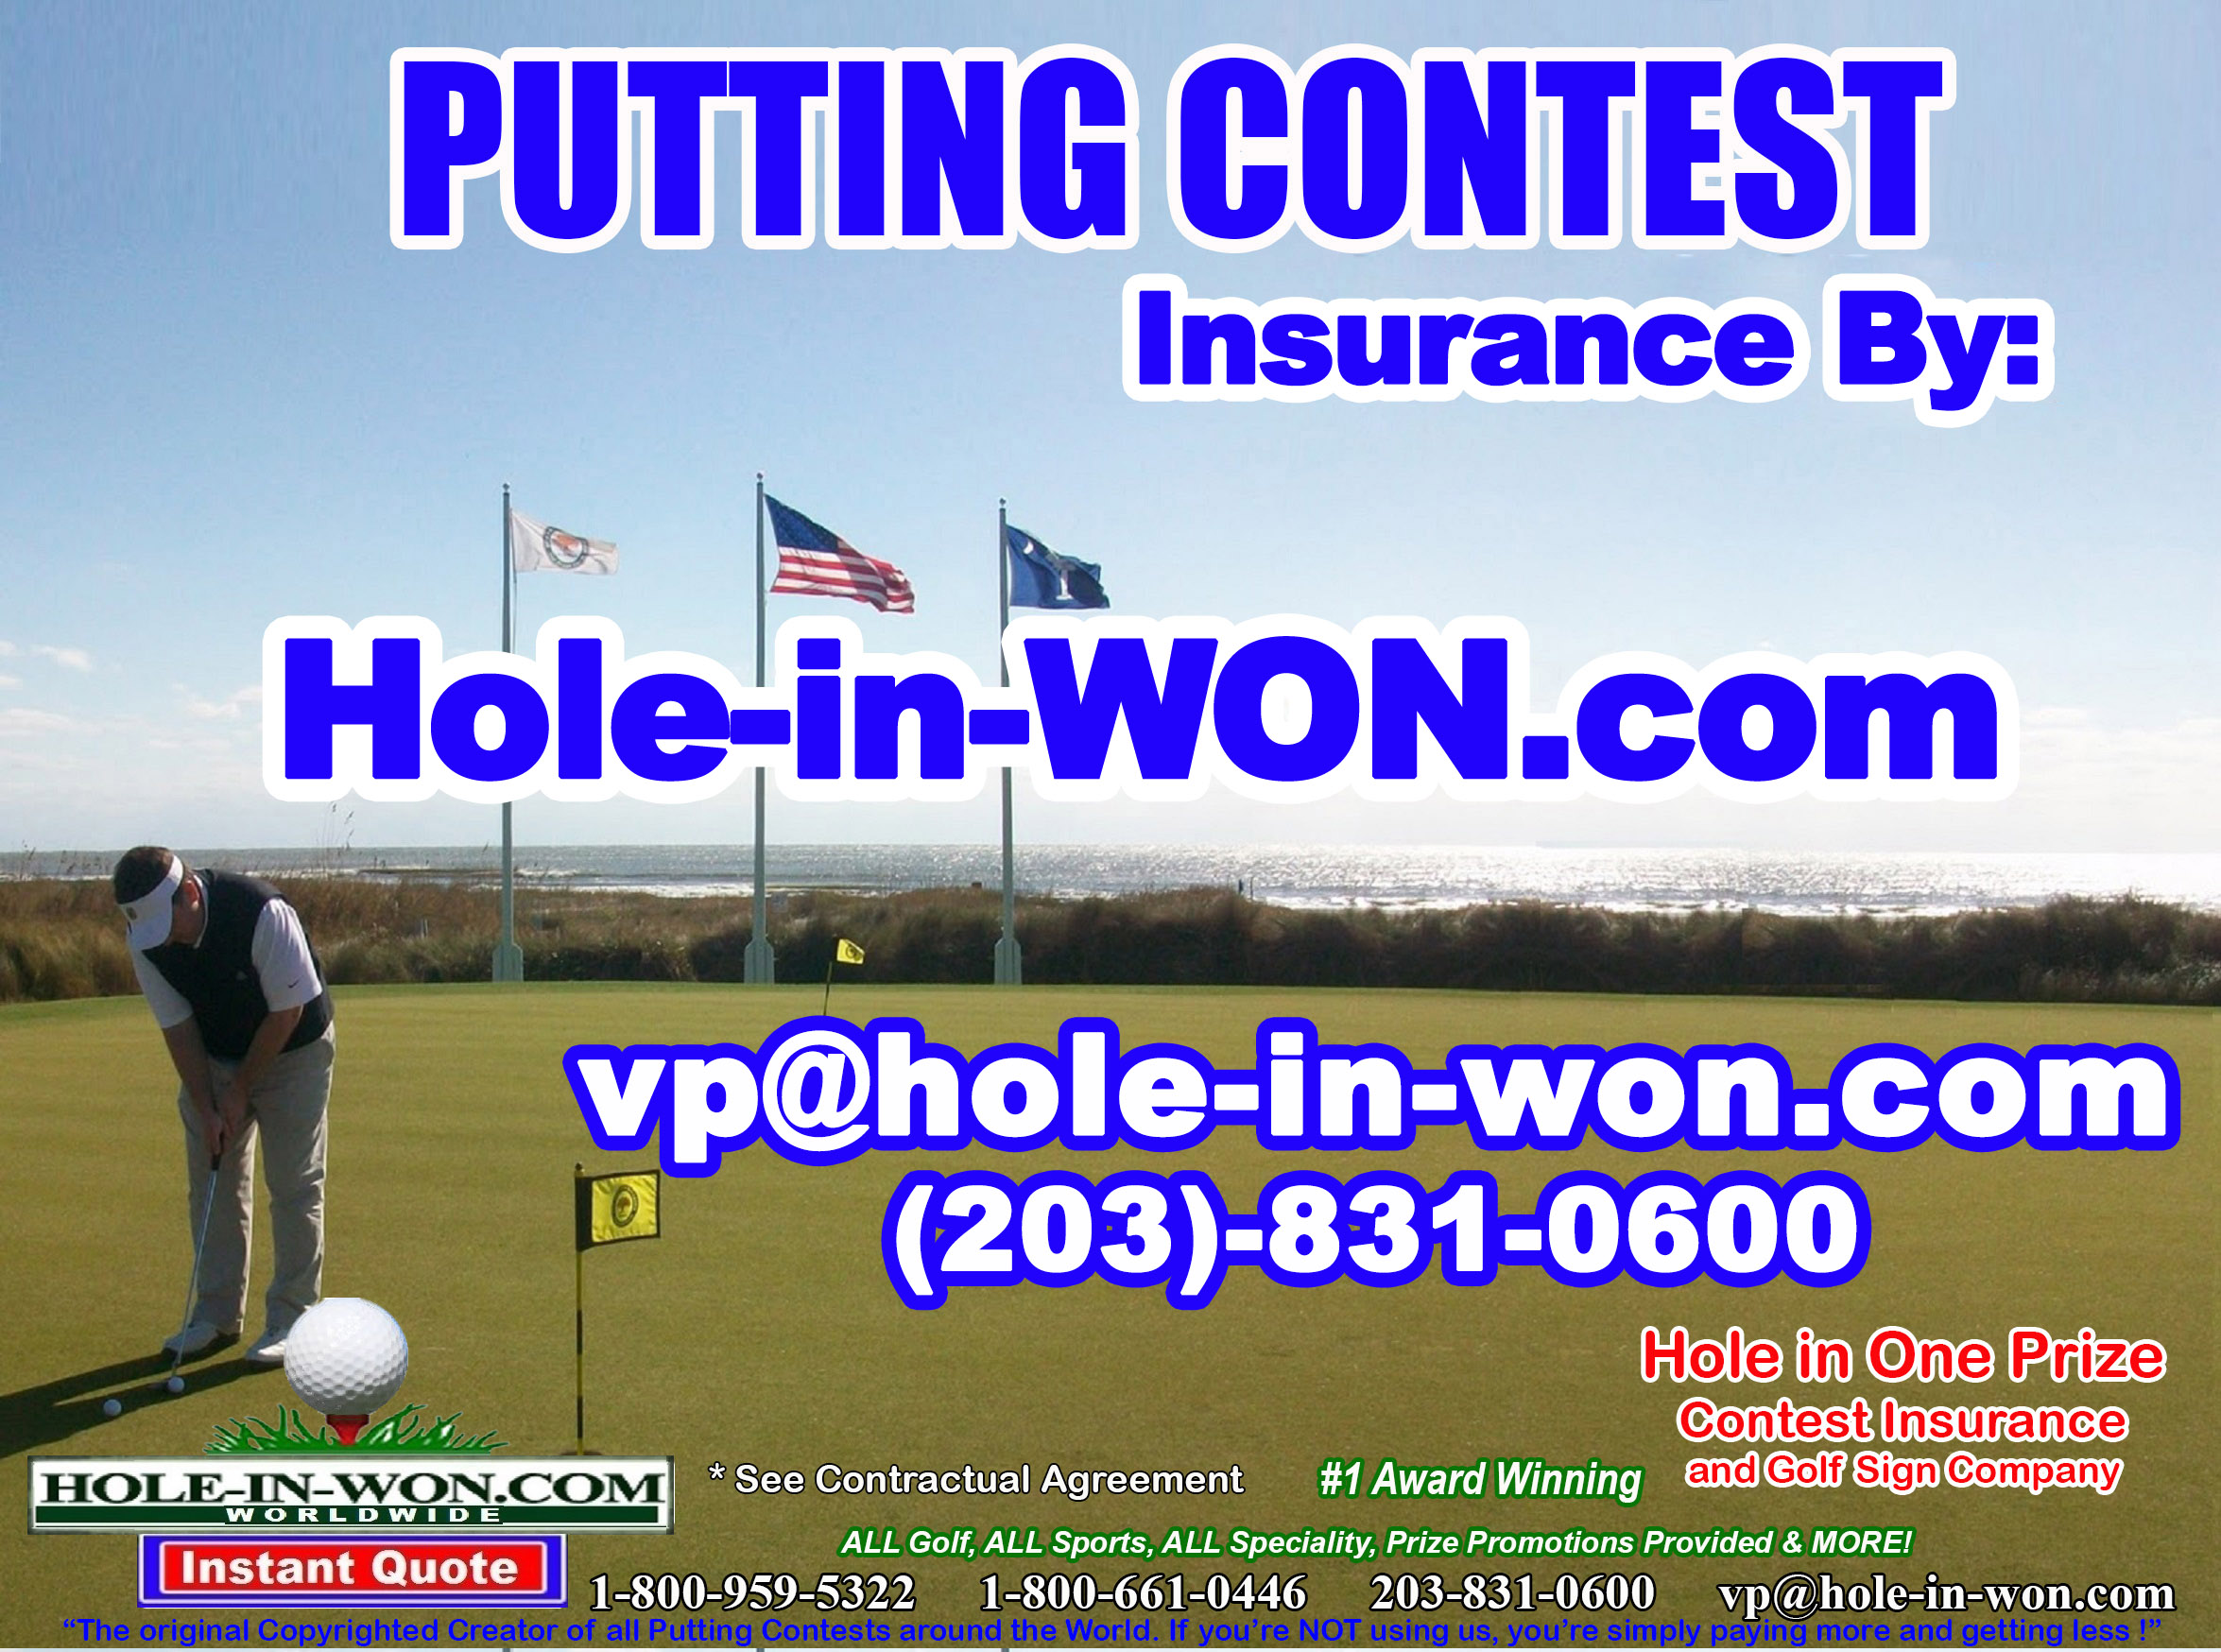 Prize Indemnification Insurance is